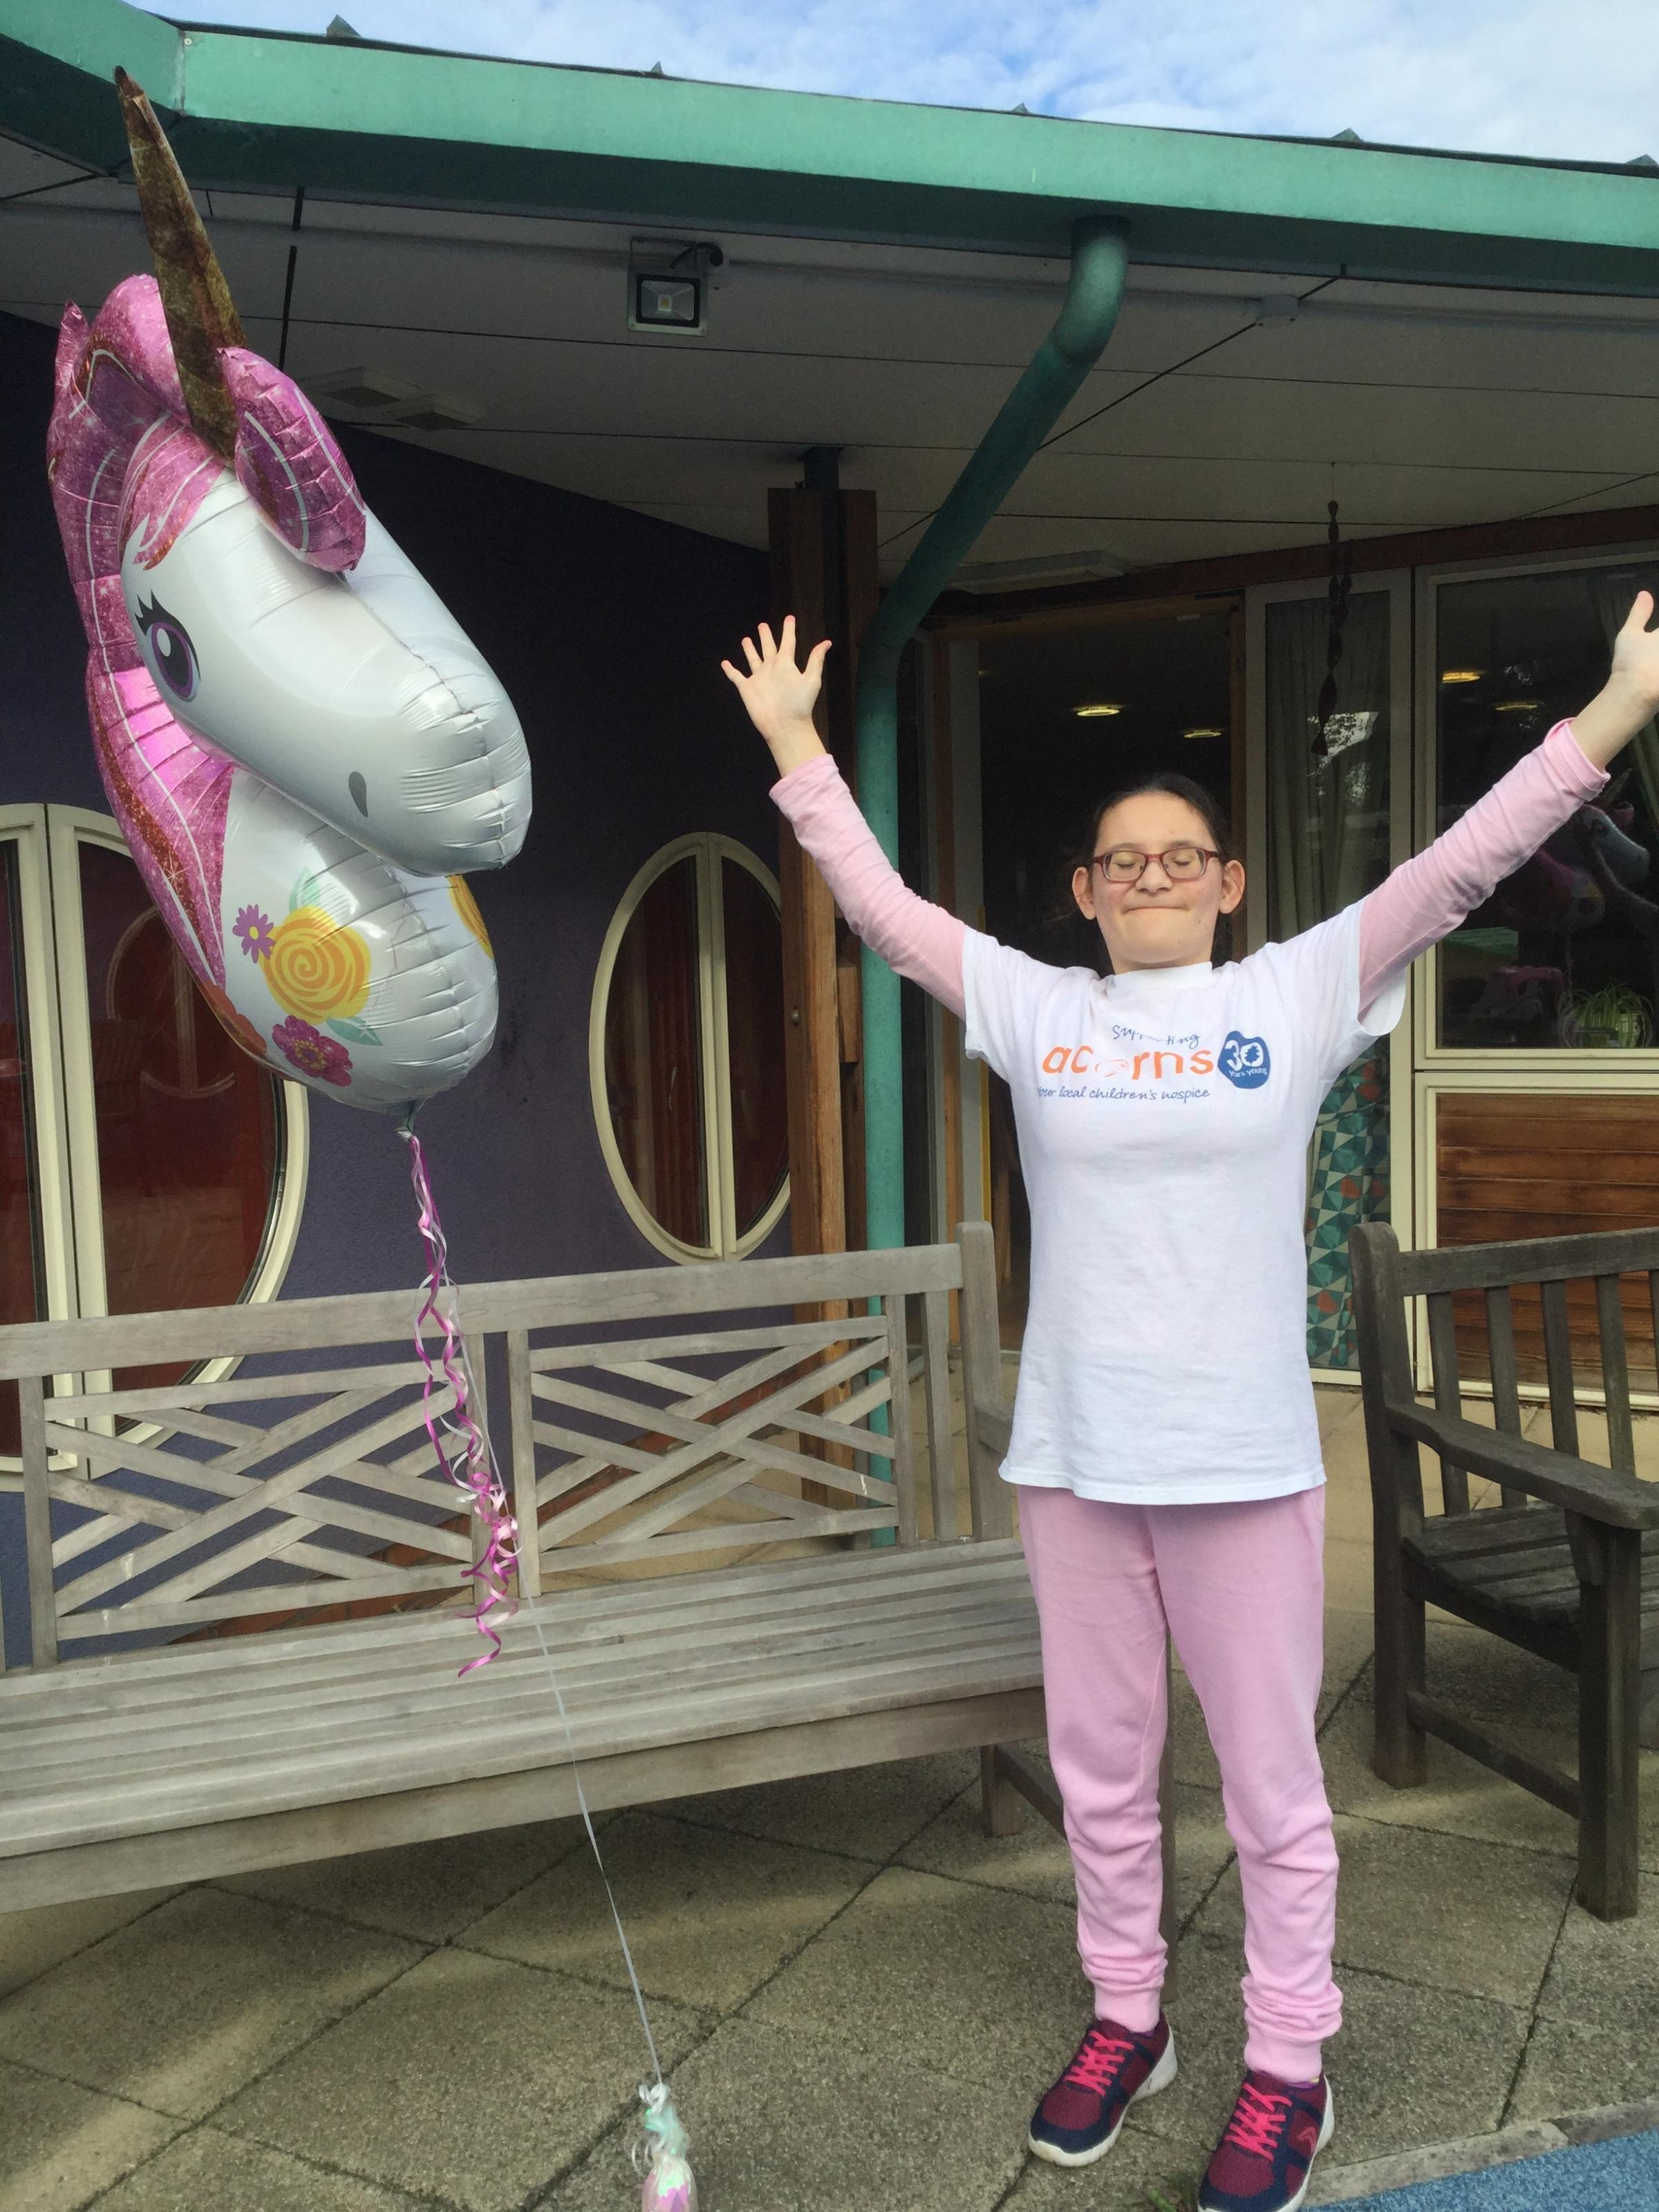 Louisa Frobisher Celebrates during a visit to Acorns